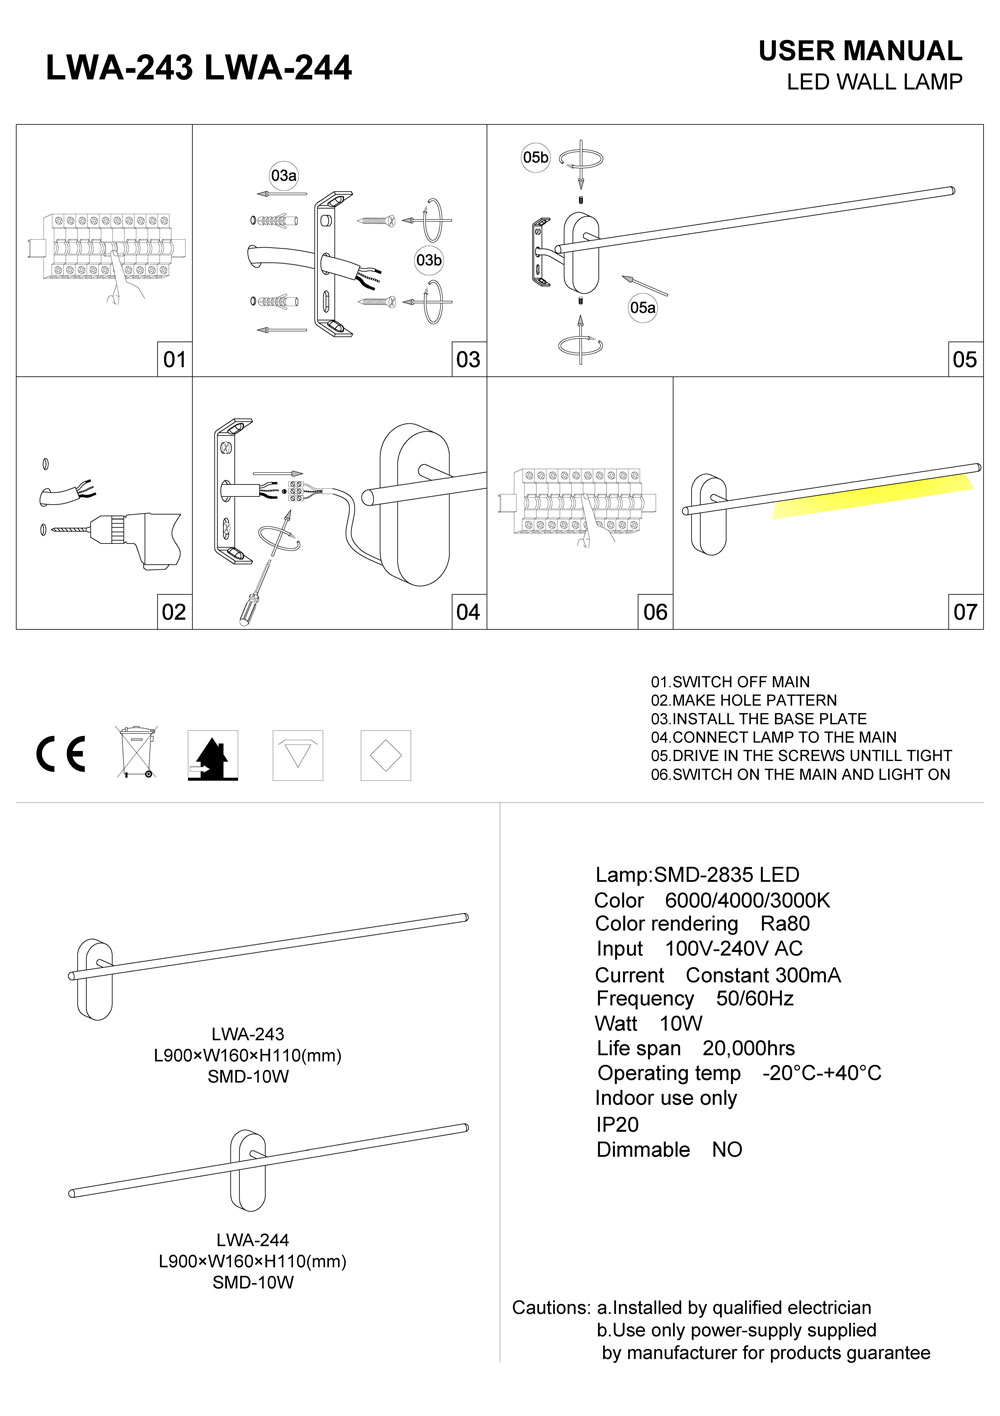 LWA-243-LWA-244 Interior LED wall light installation guide